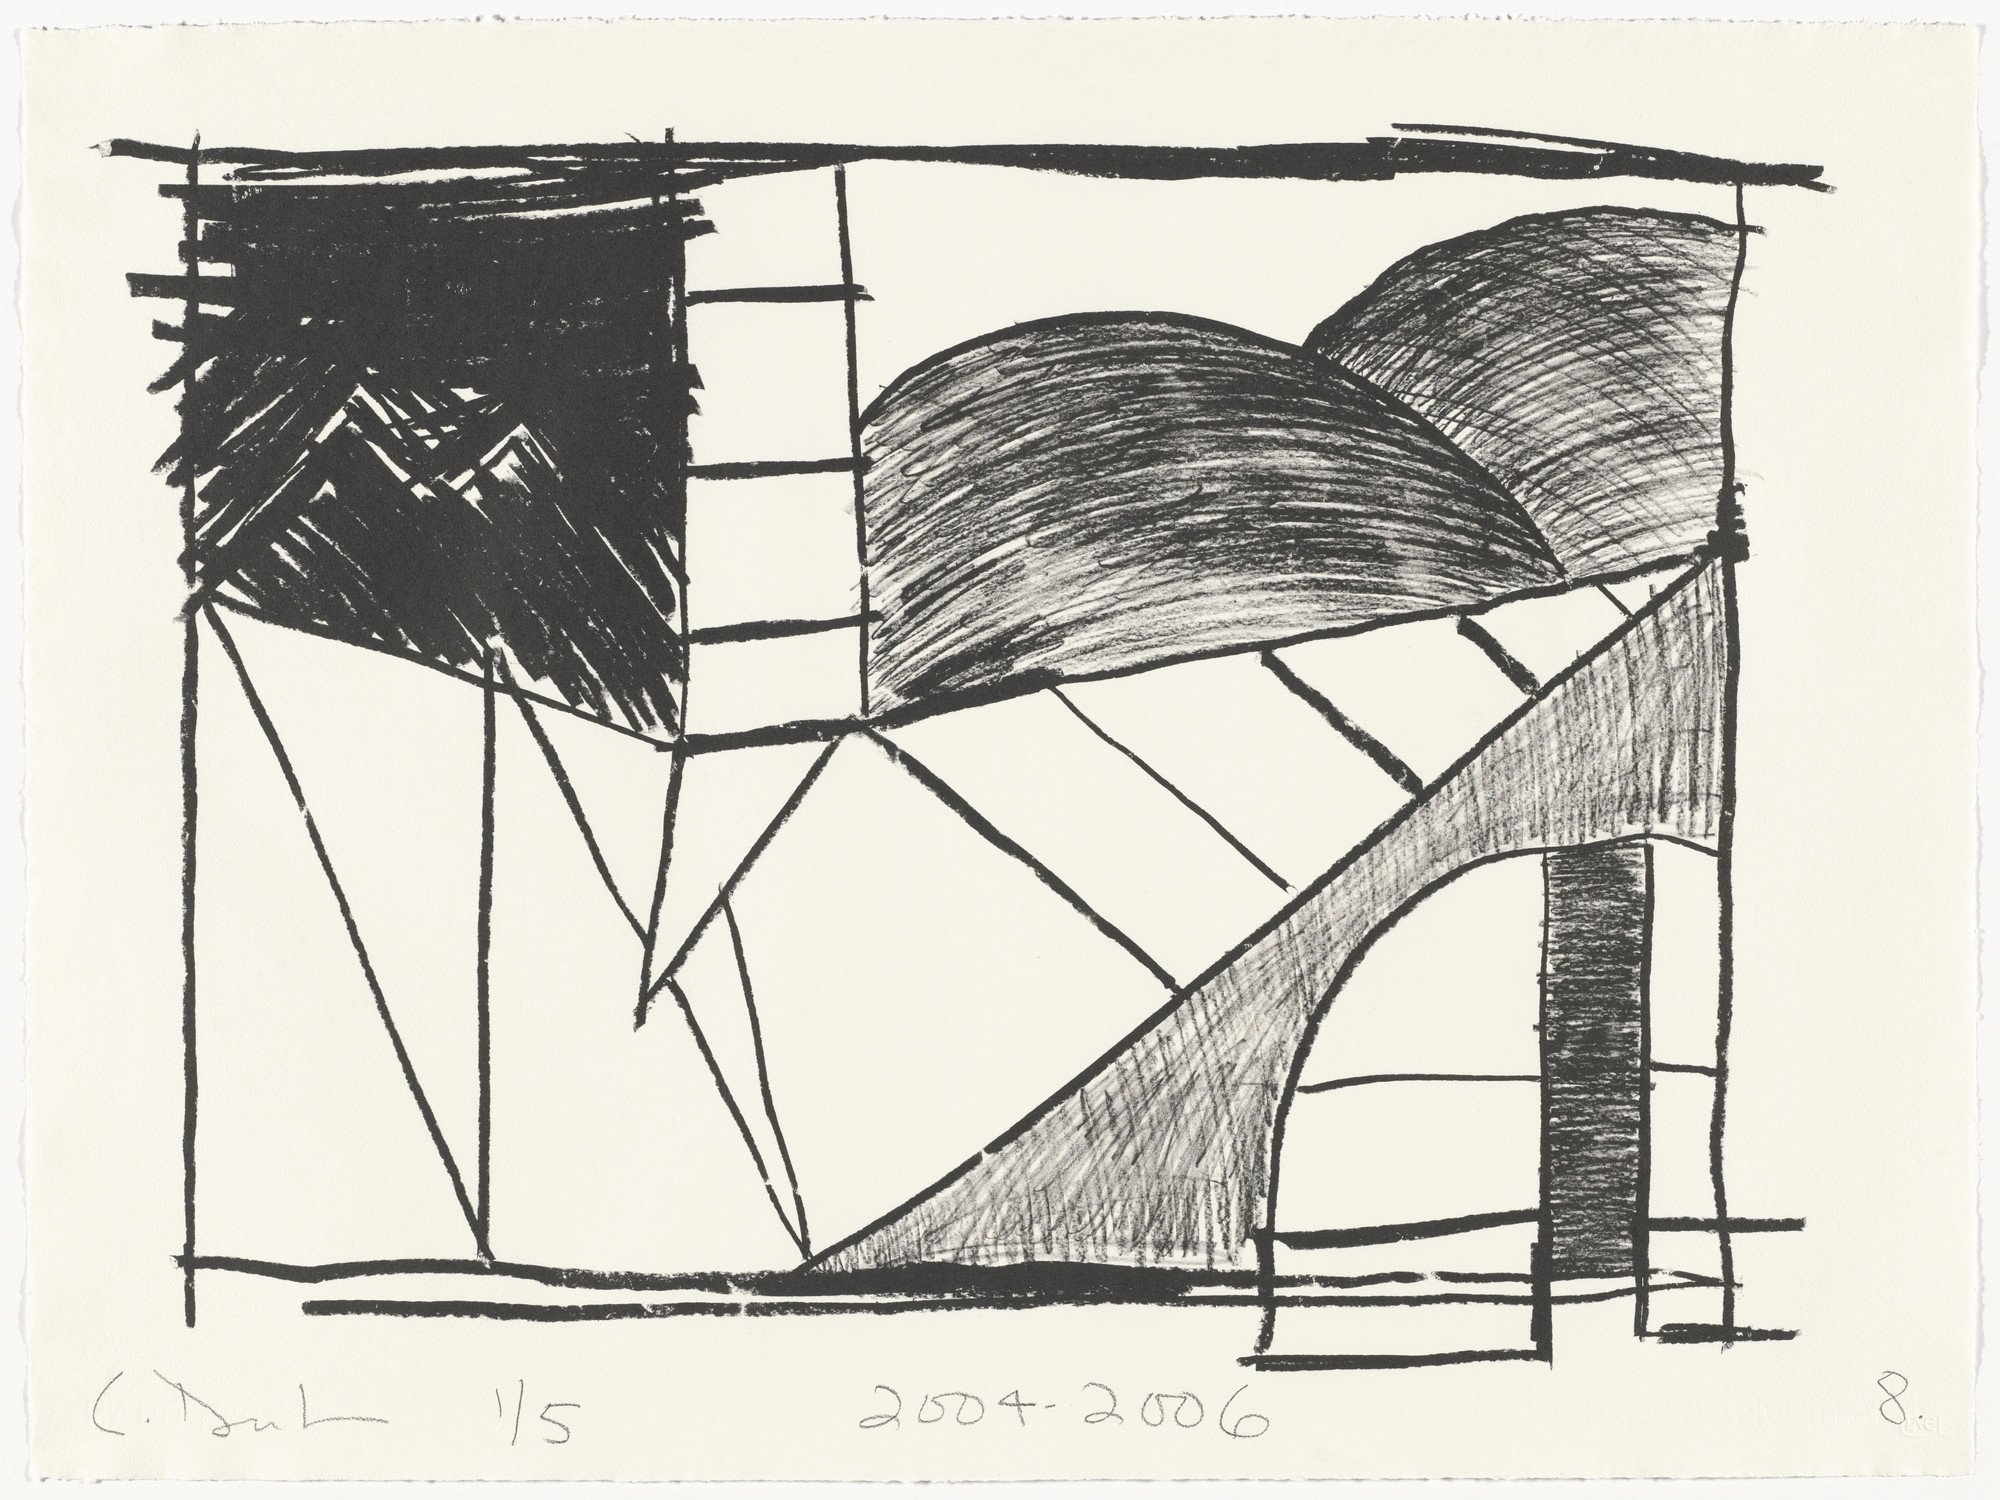 Carroll Dunham. Untitled (8) from Untitled. 2004-06